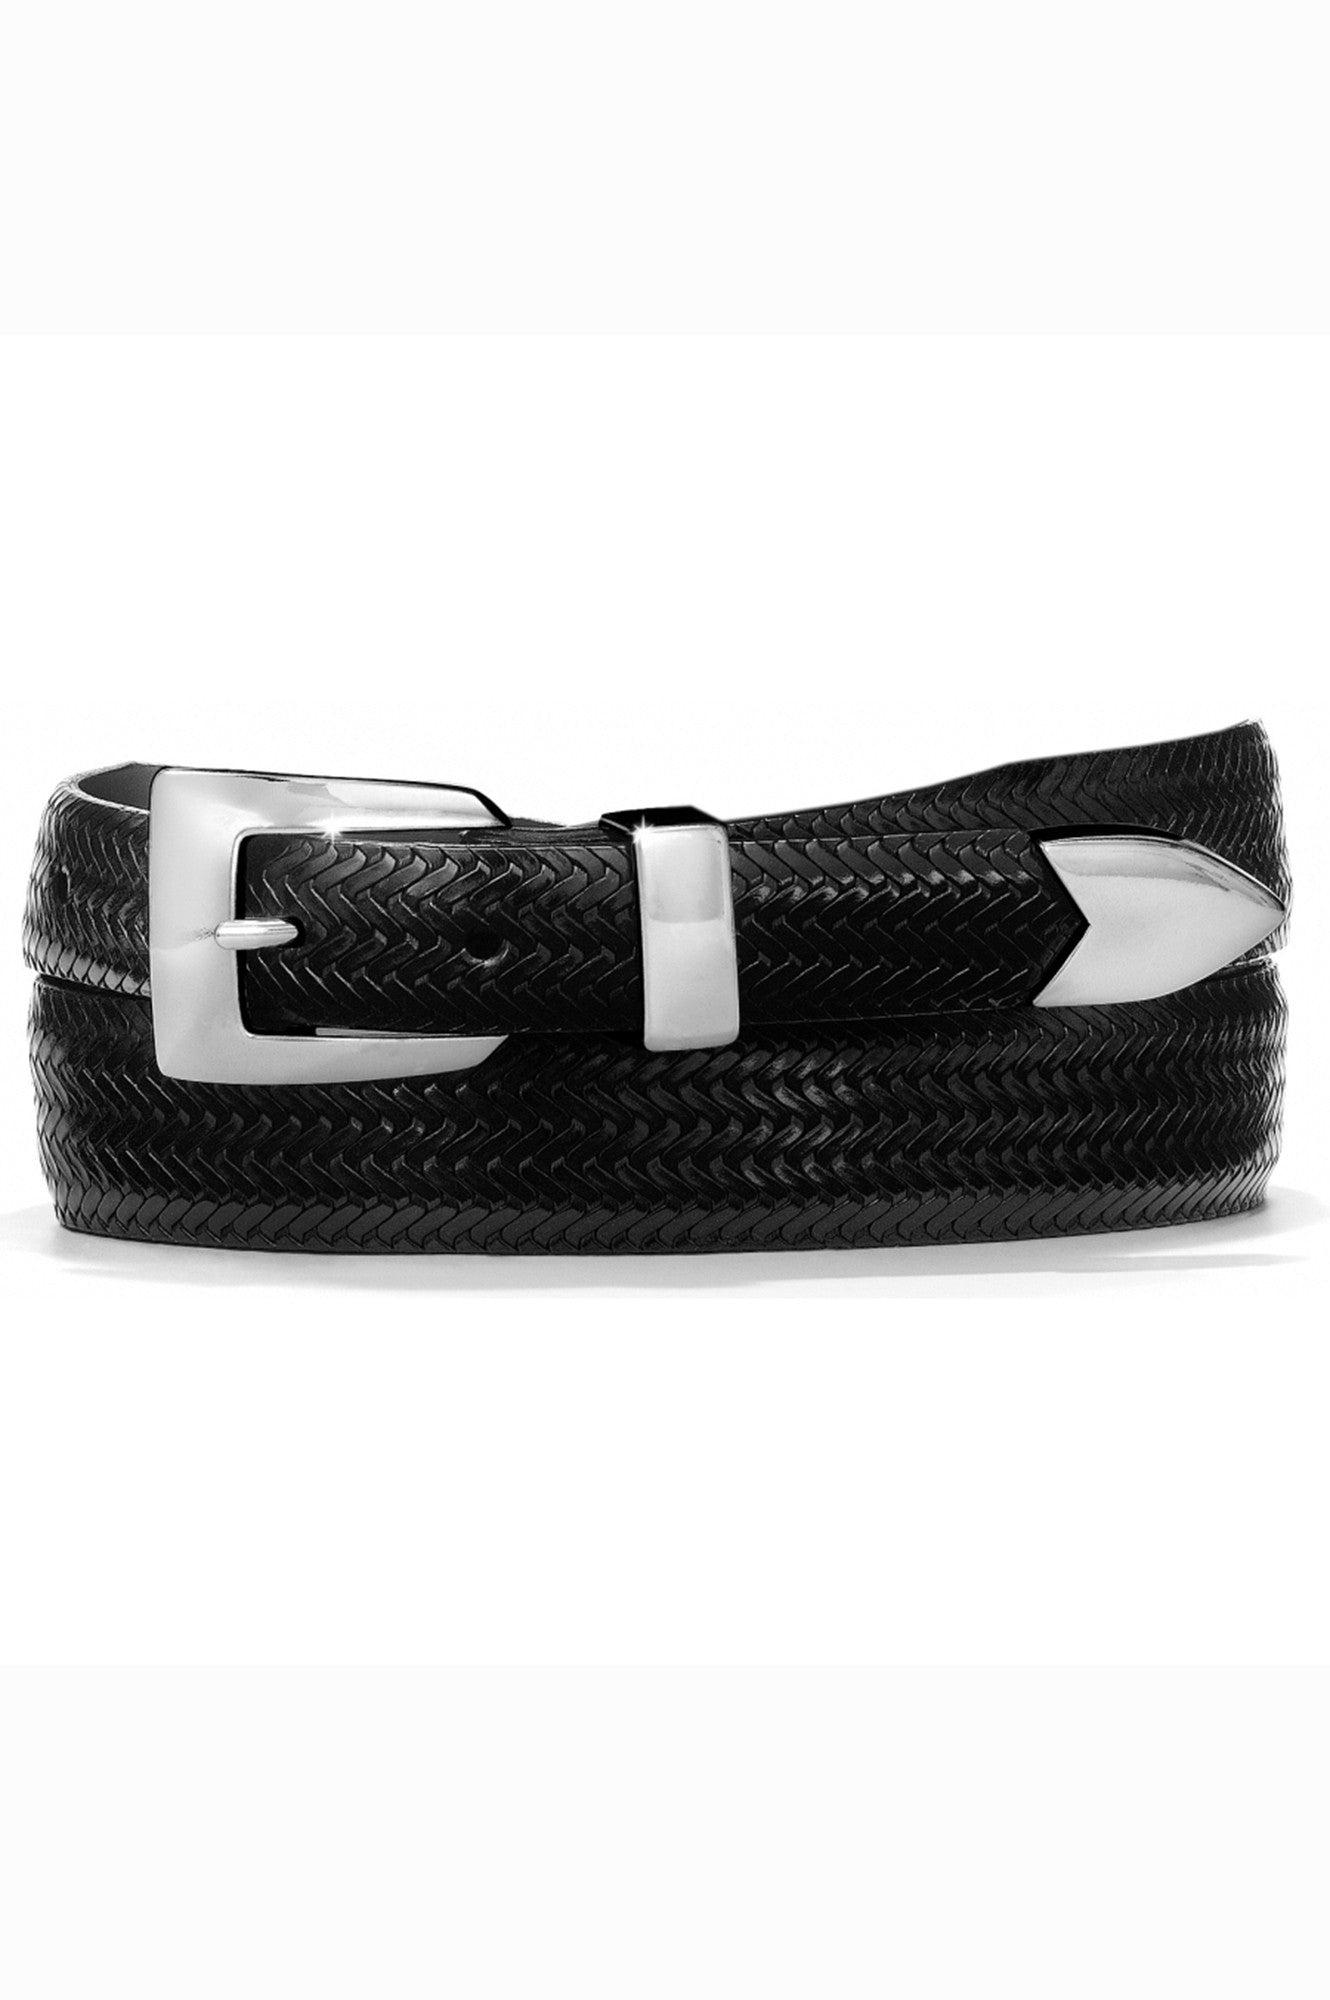 black leather belt, mens belt, belts, brighton belts, black basket weve belt, mens black leather brighton belts, brighton leather